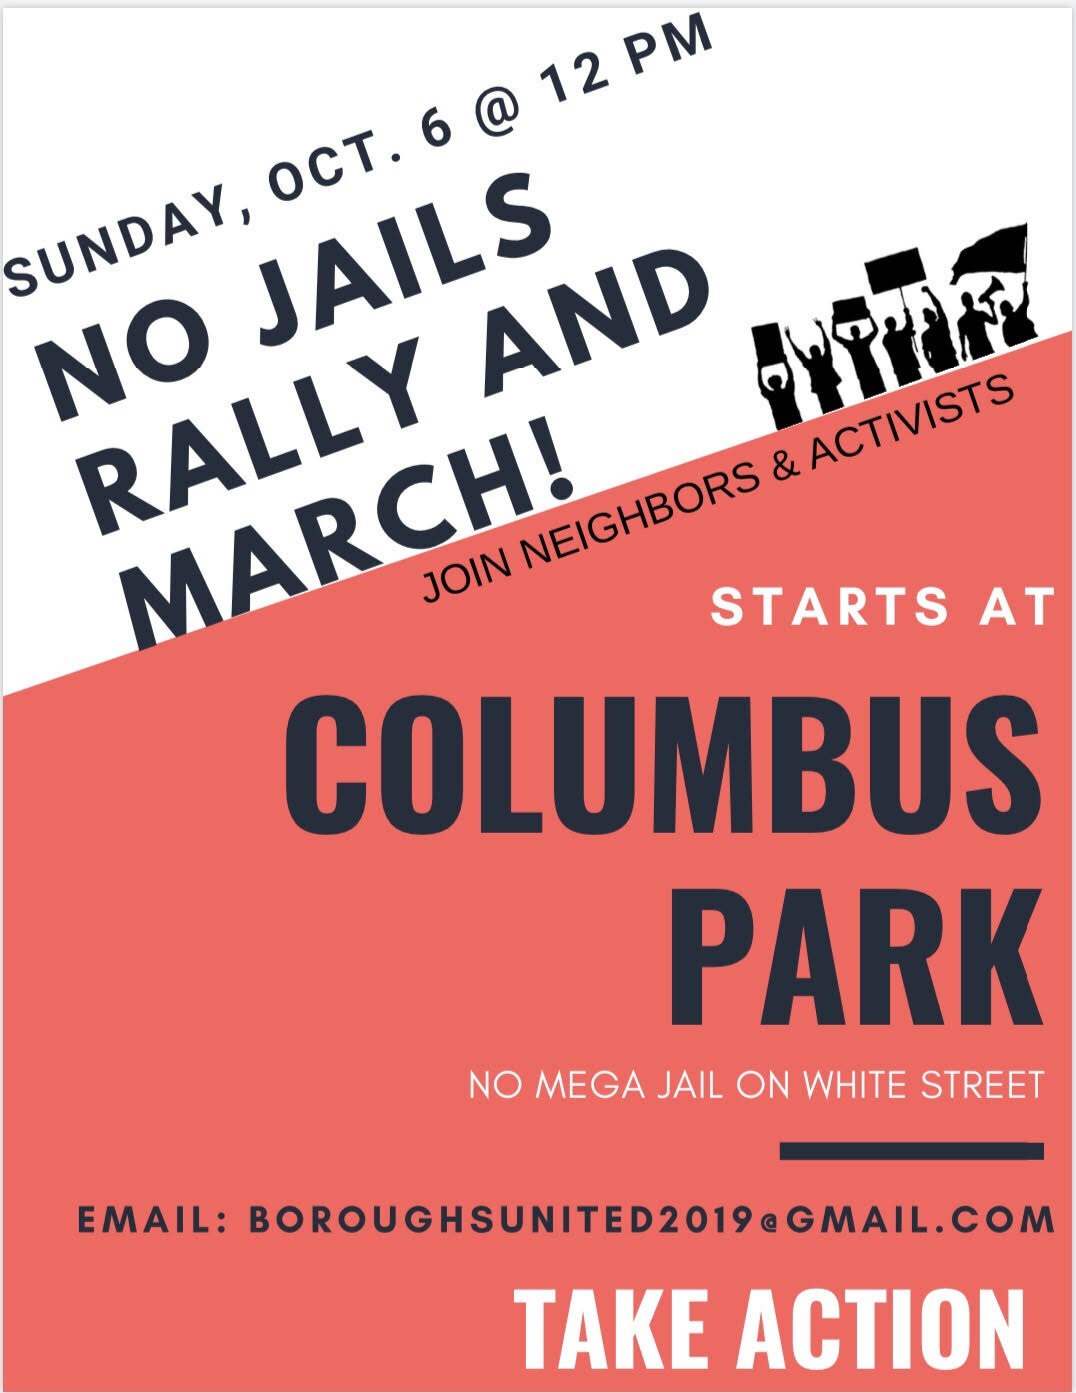 rally red and black flyer.jpg